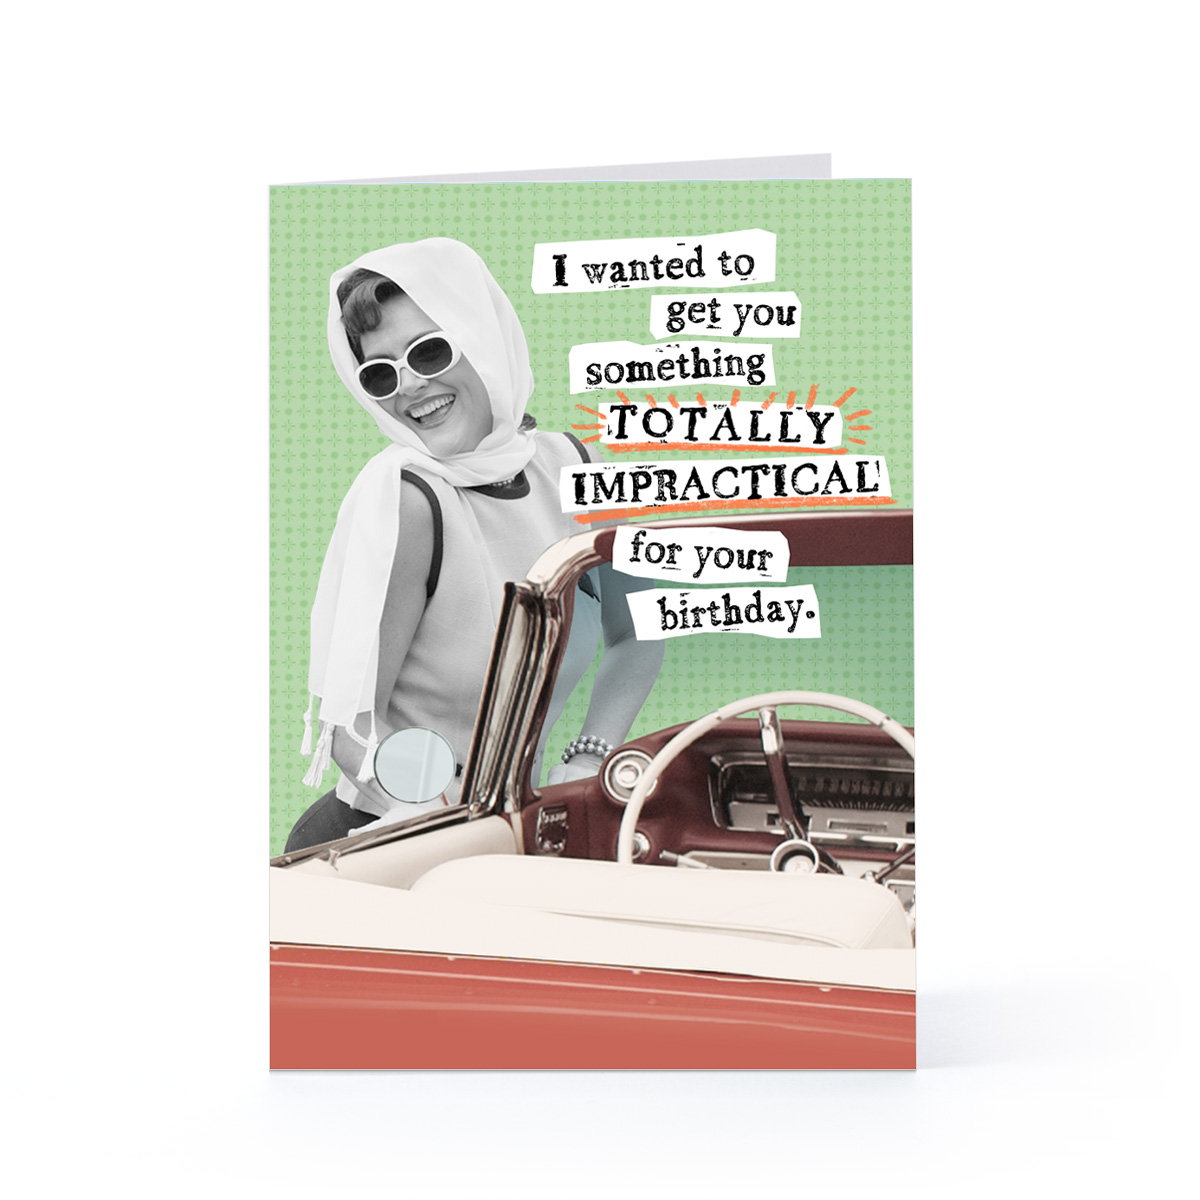 happy birthday sassy ; sassy-birthday-cards-beautiful-design-collection-for-your-stylish-birthday-card-ideas-classy-birthday-lady-funny-quotes-like